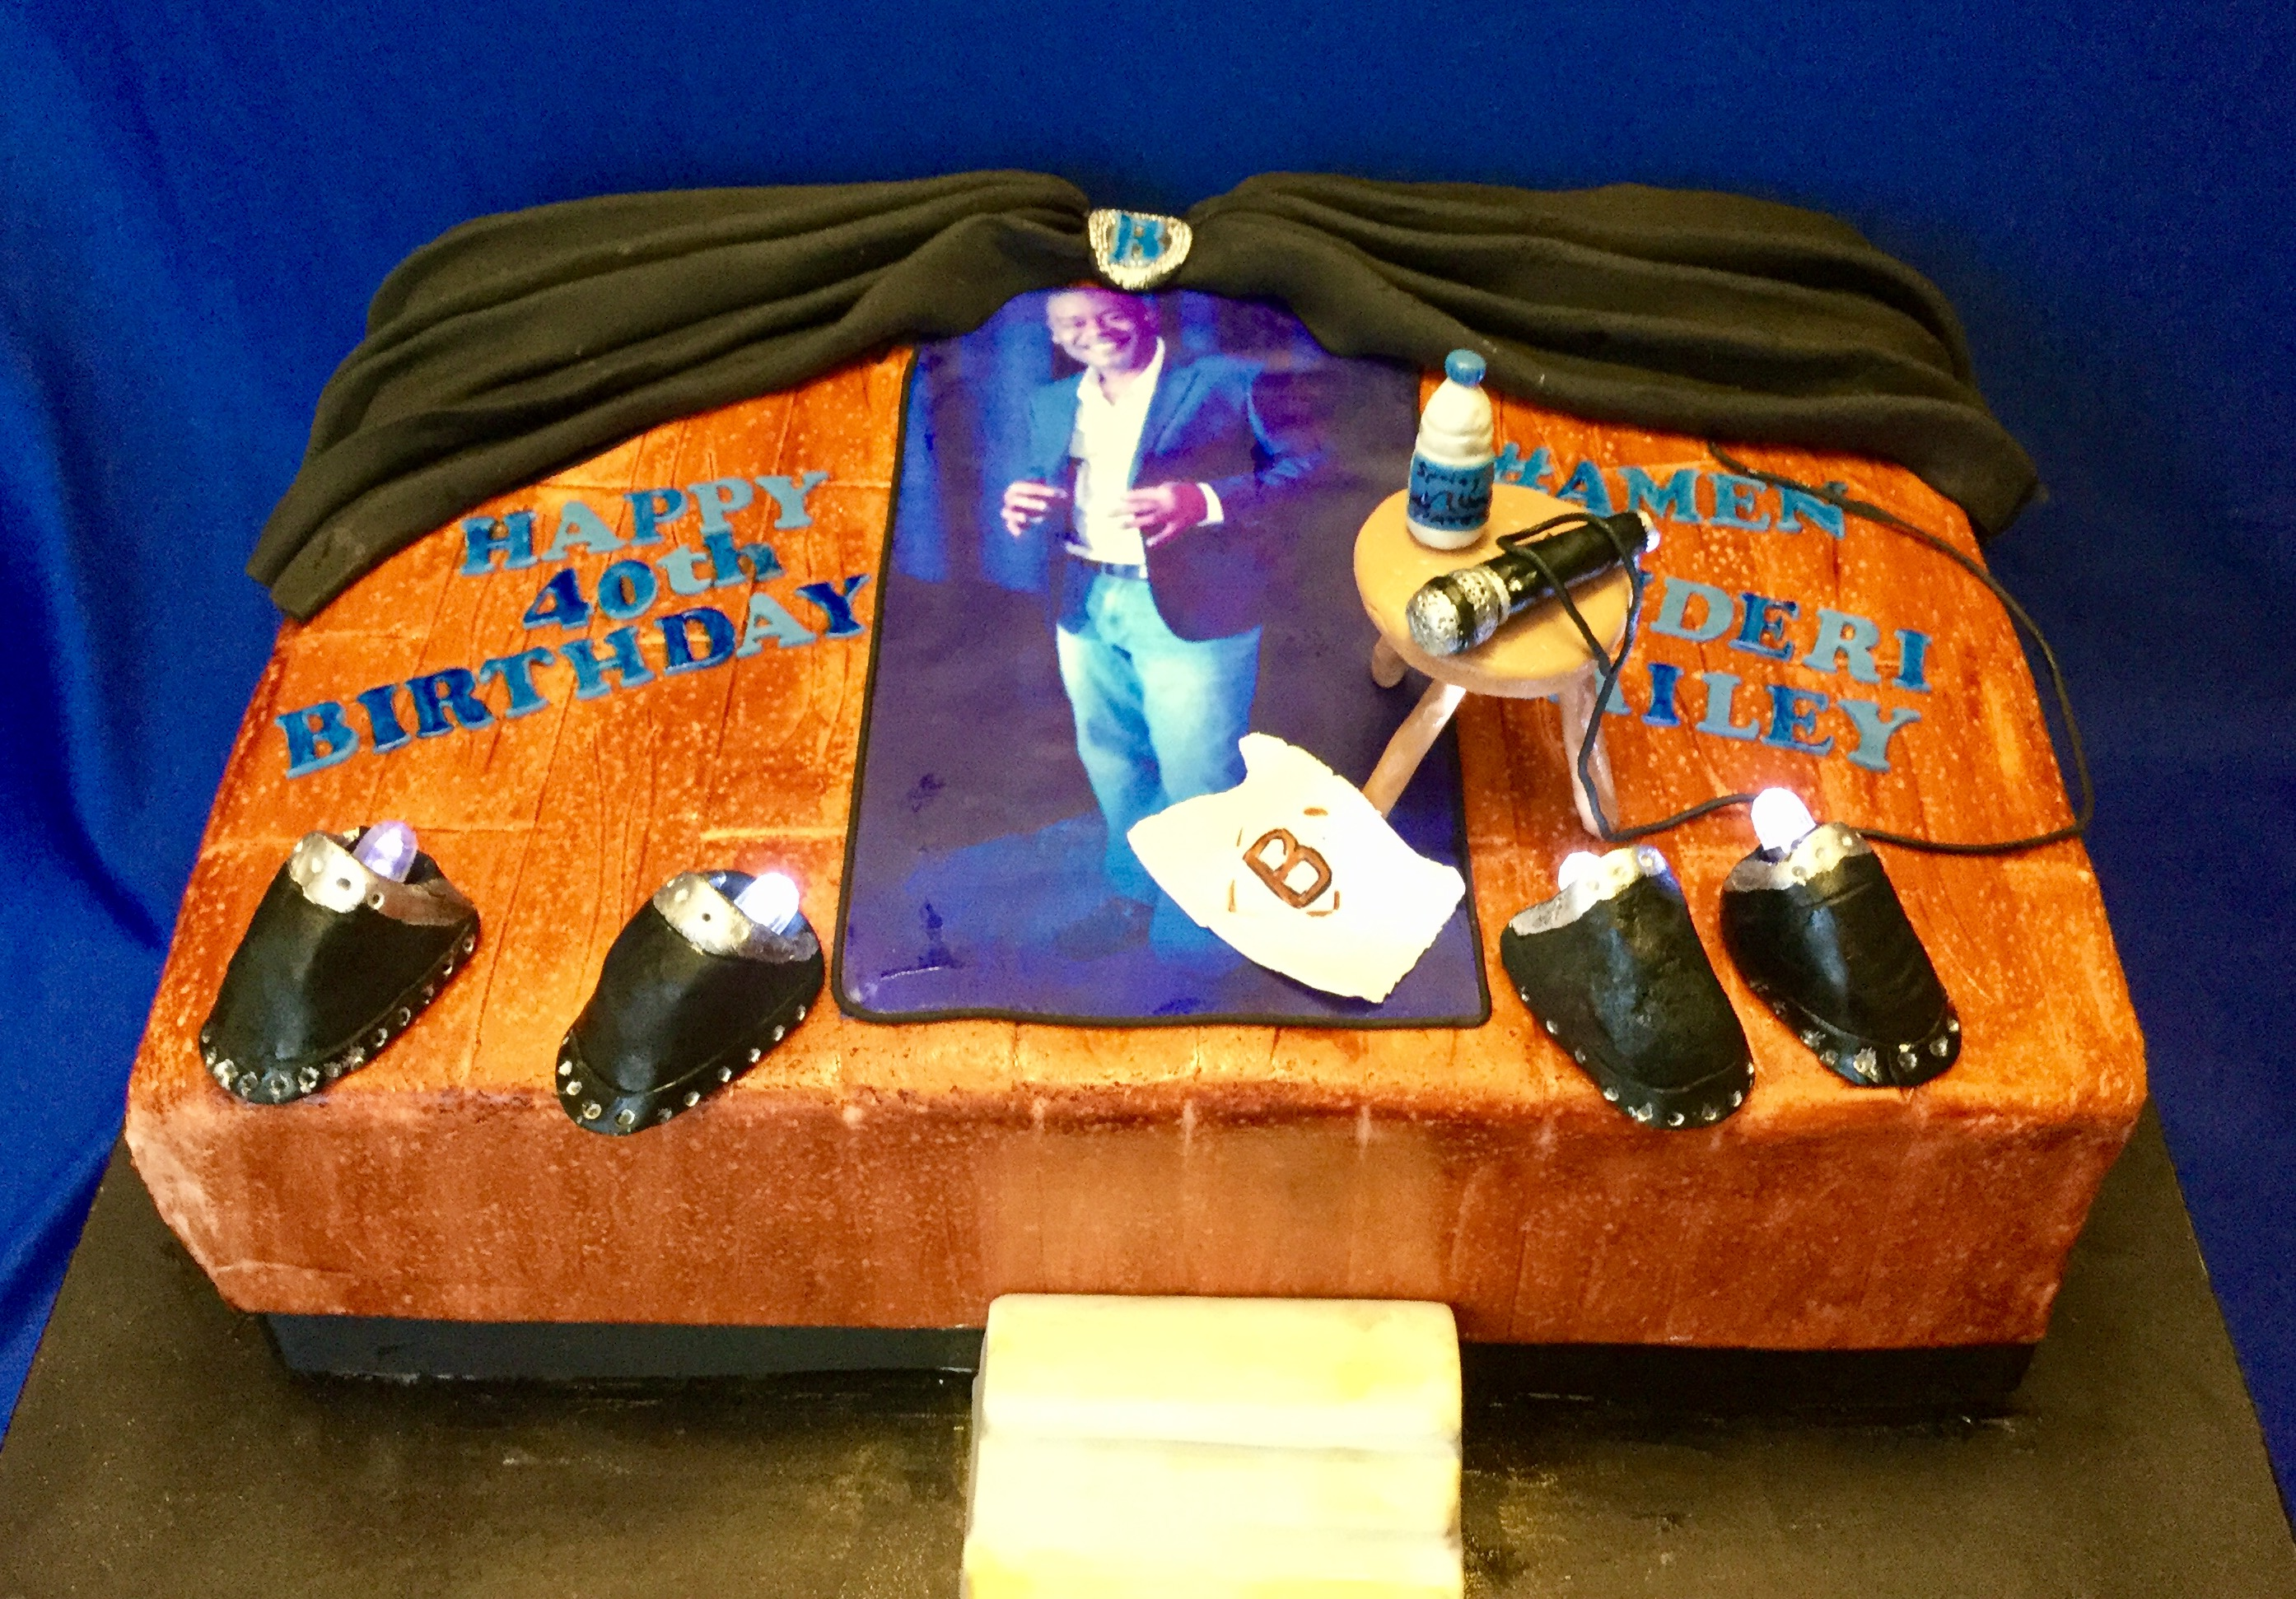 Comedy Stage Cake with Spotlights